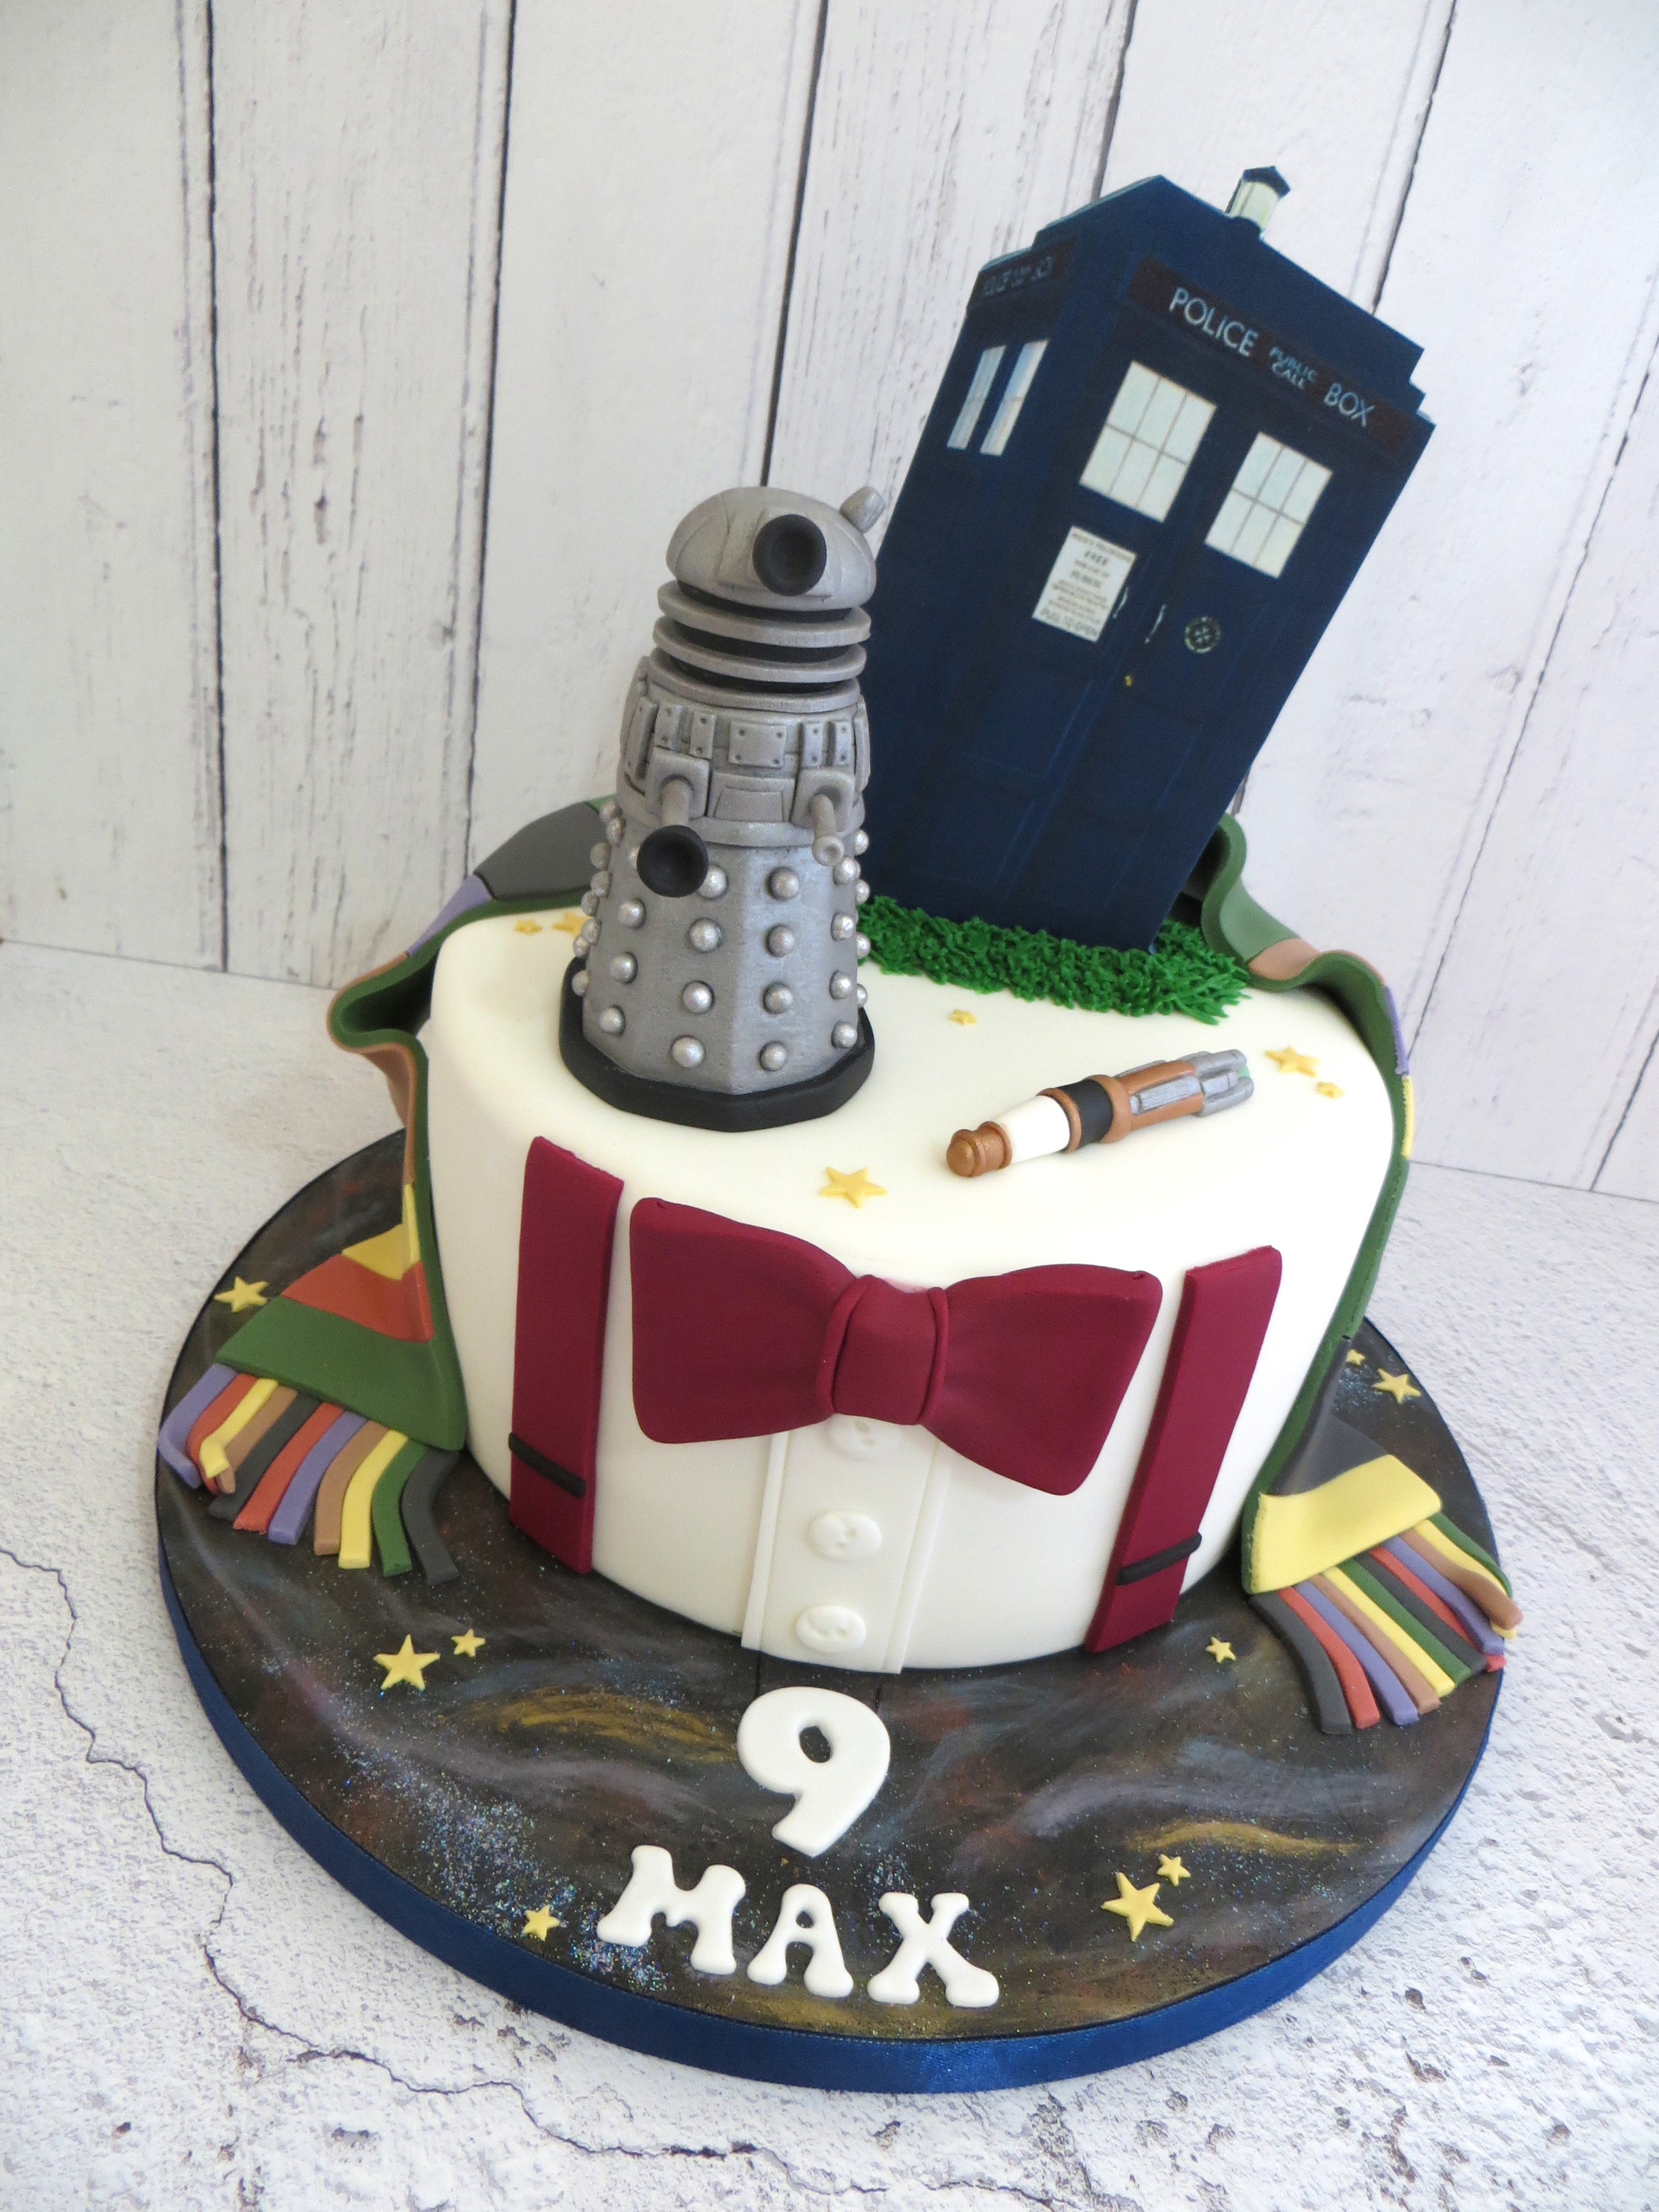 Astonishing Dr Who Birthday Cake Funny Birthday Cards Online Alyptdamsfinfo